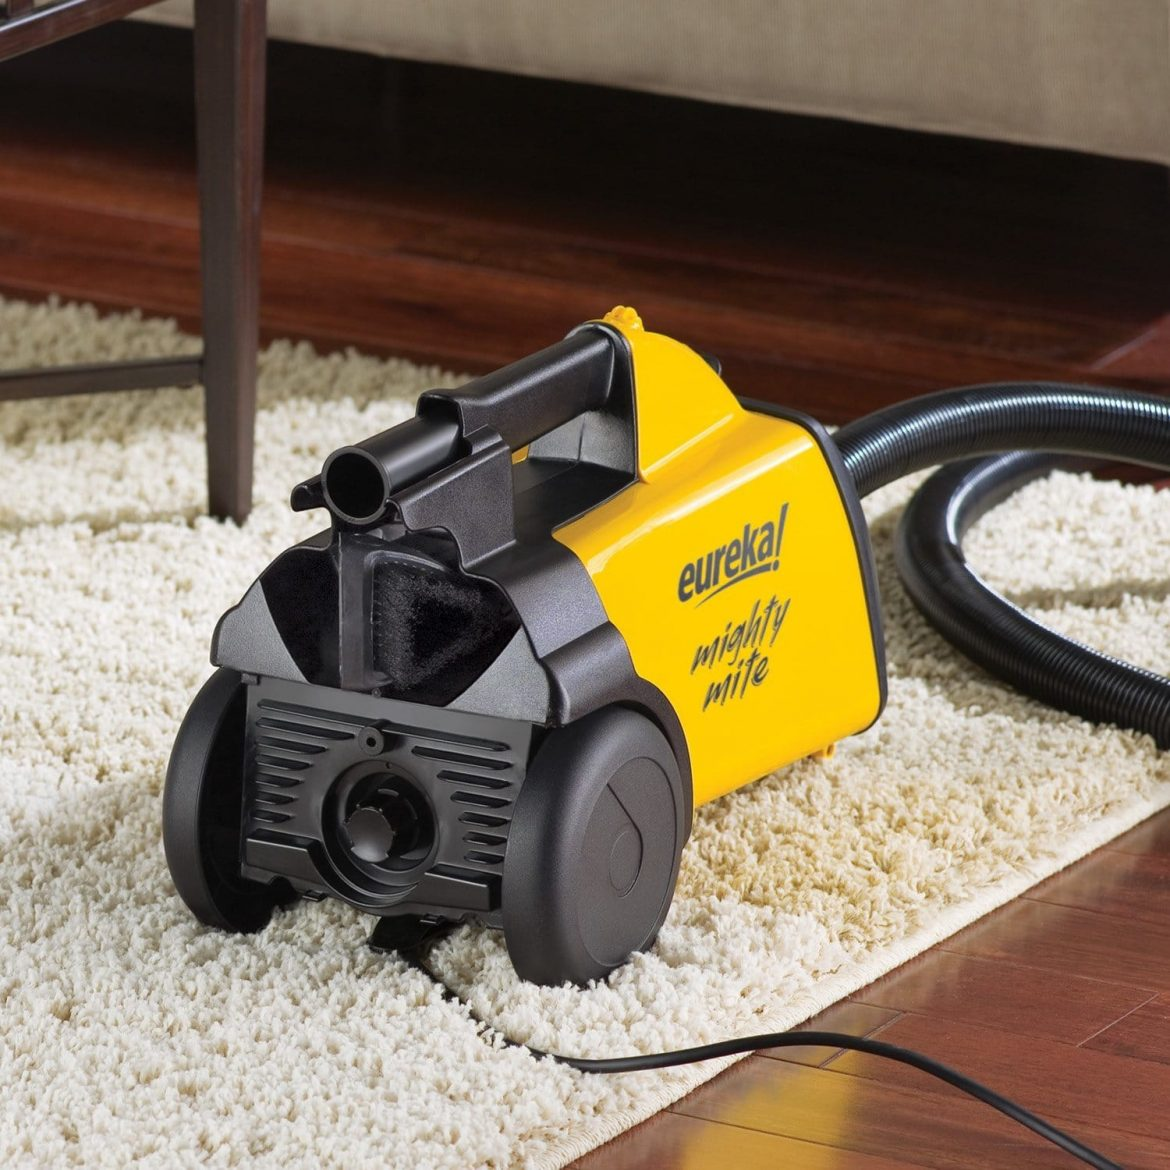 Eureka 3670G Boss Mighty Mite Canister Vacuum Review